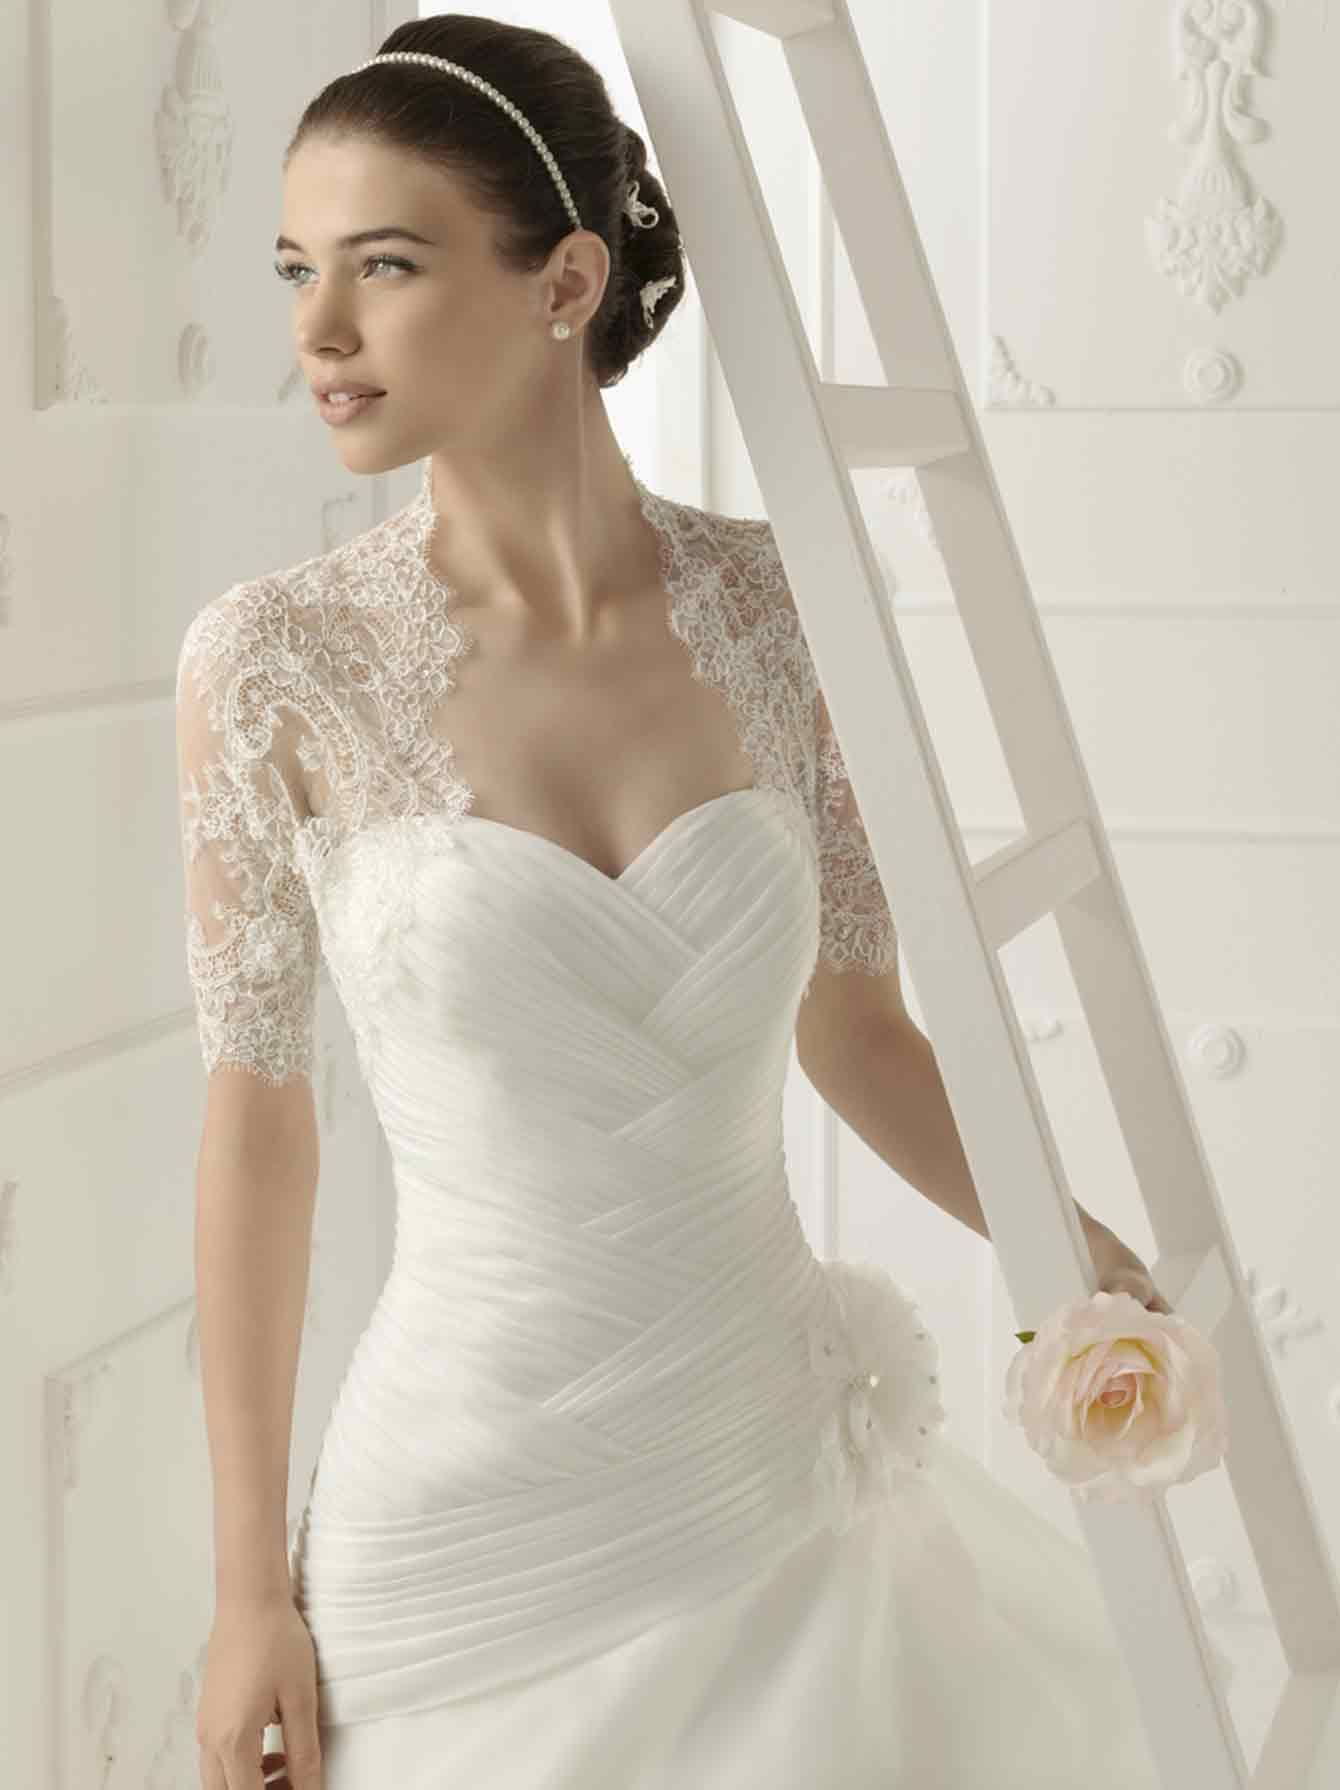 Dress with jacket for wedding  Vestidos noiva de Aire  Wedding Dress  Pinterest  Wedding dress